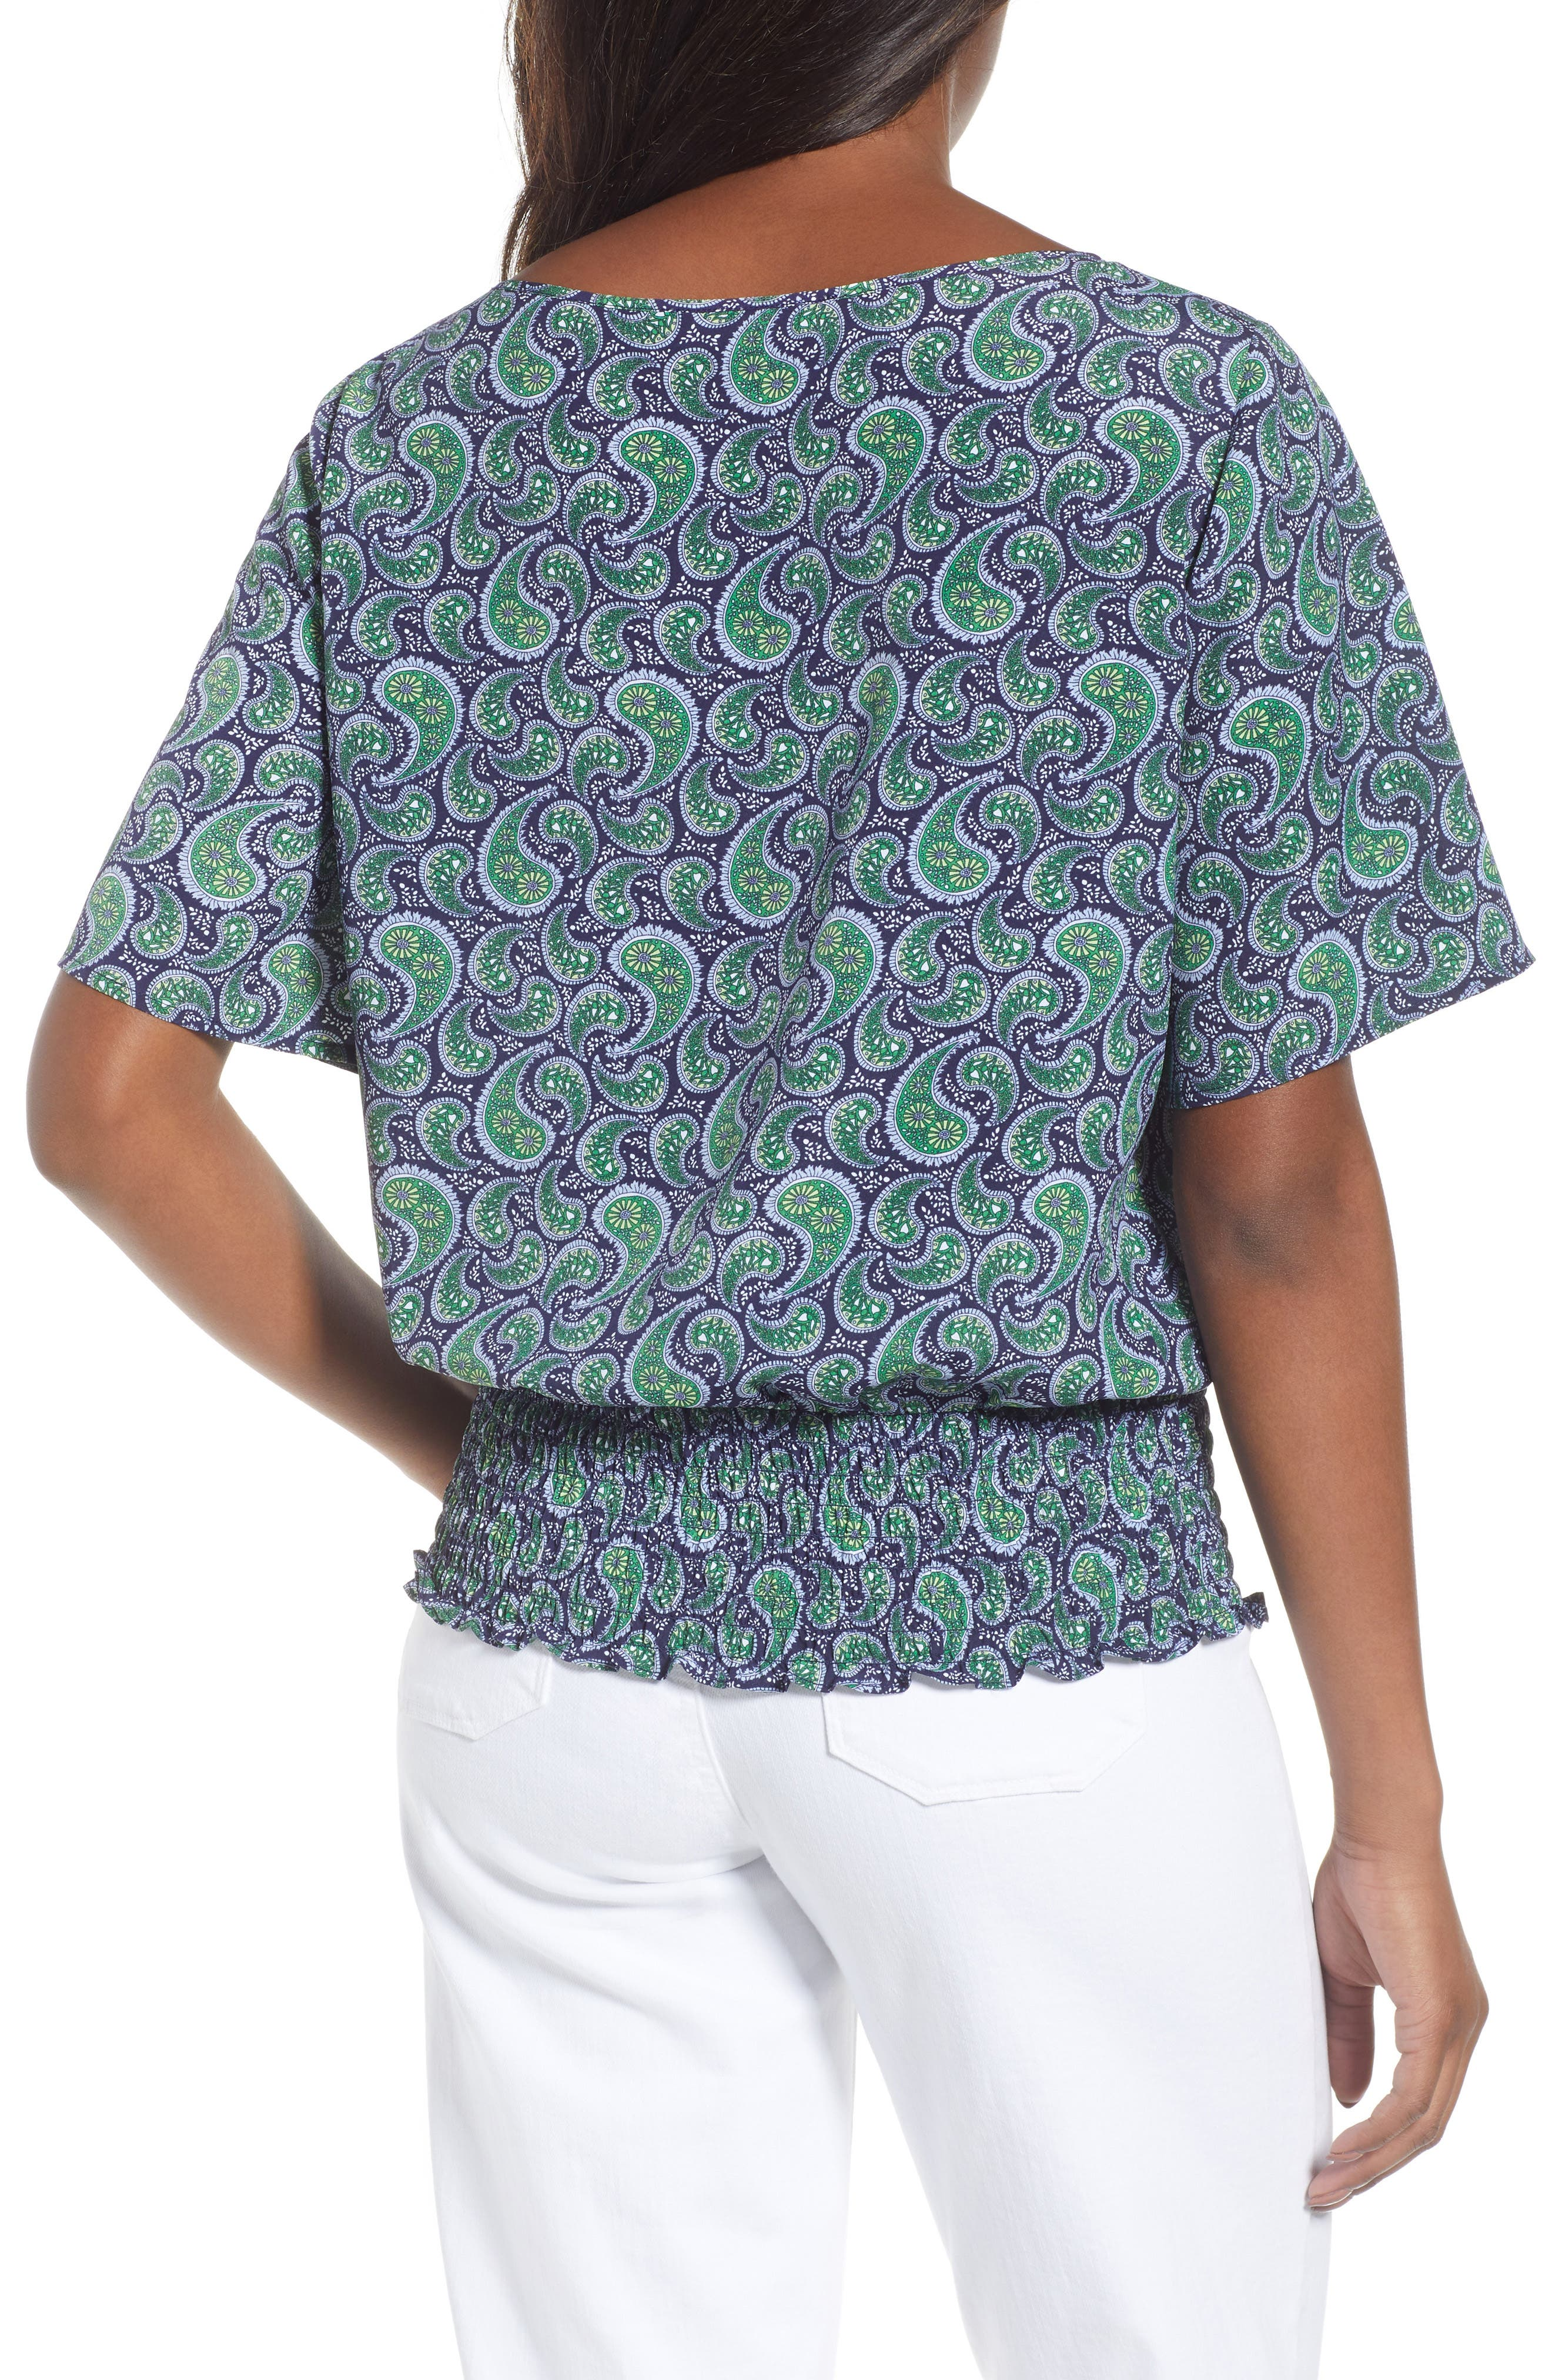 Kimono Sleeve Paisley Top,                             Alternate thumbnail 2, color,                             True Navy/Green Apple Mu